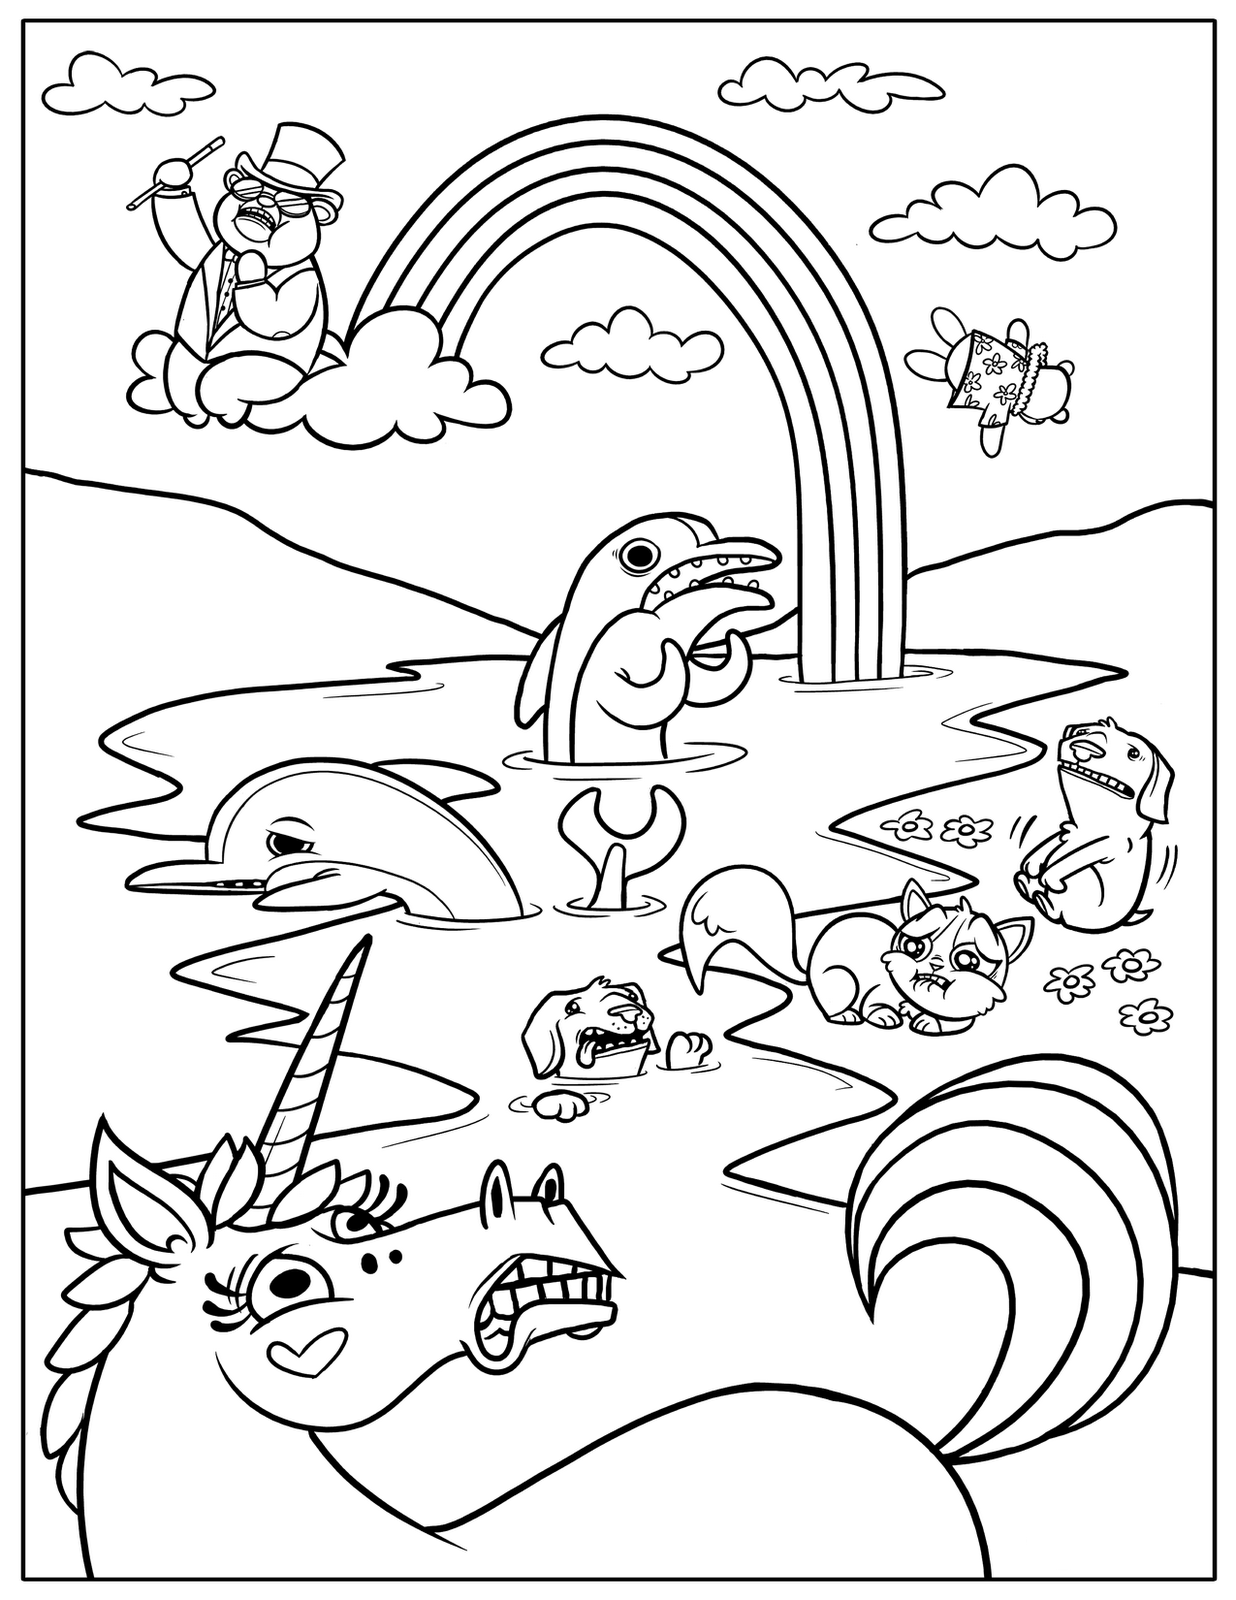 coloring picture to print free printable tangled coloring pages for kids print to picture coloring